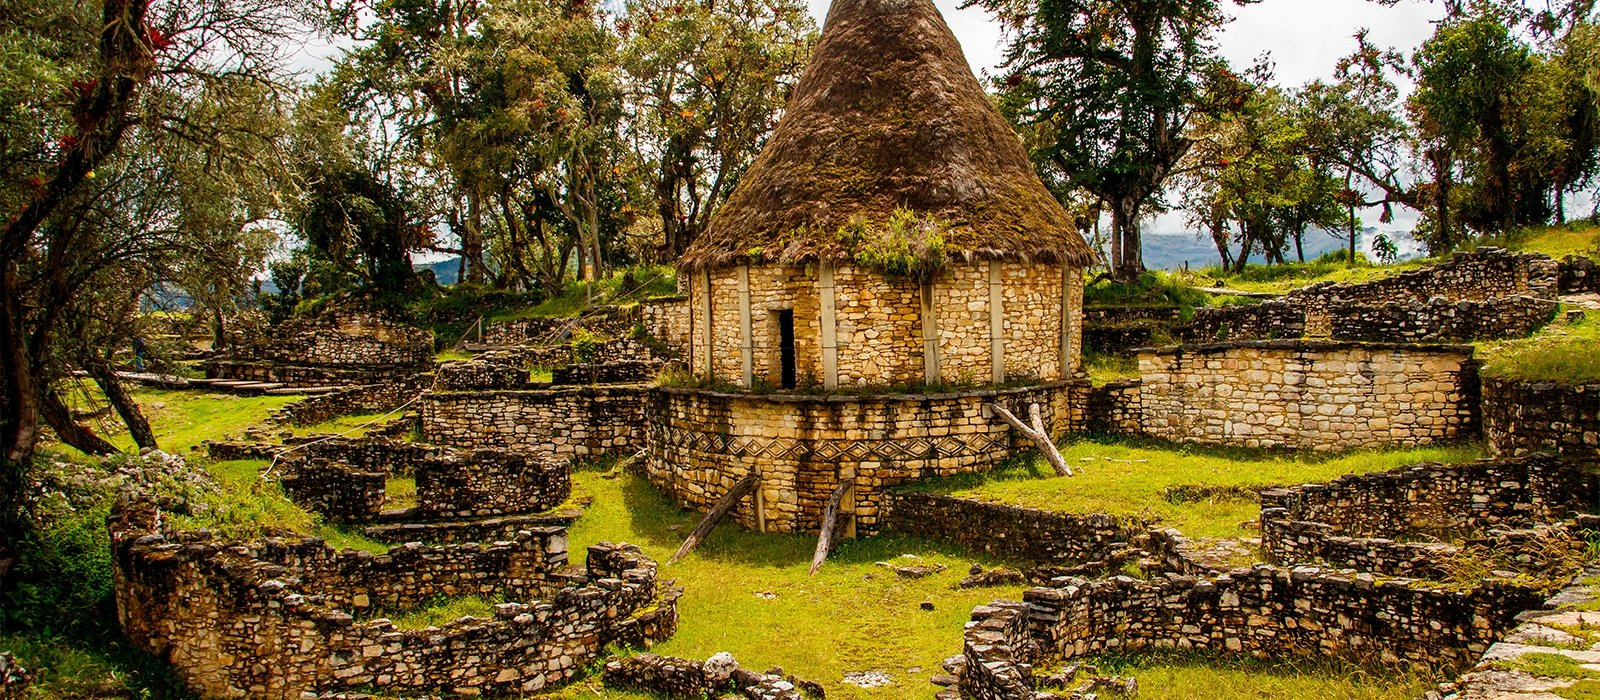 Discover Chachapoyas